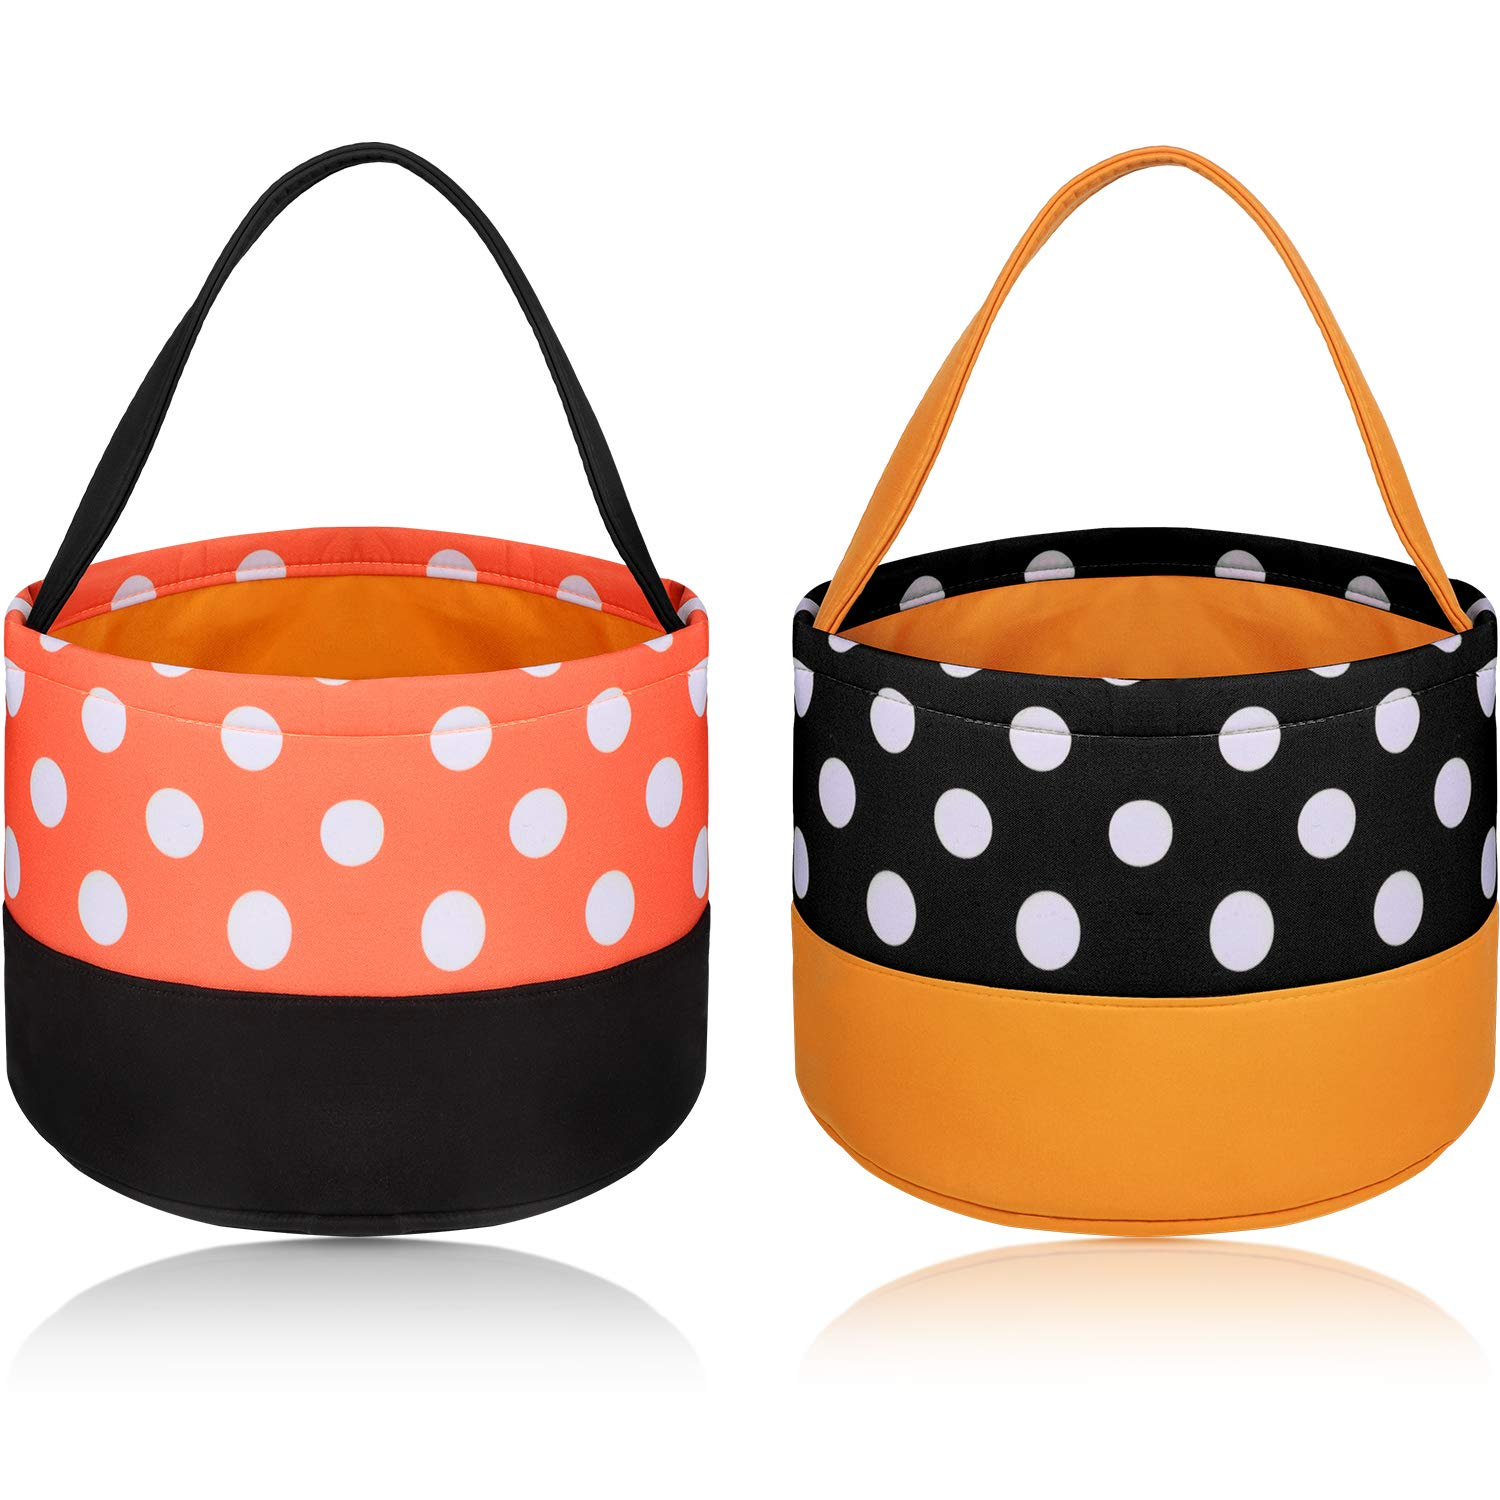 2 Pieces Trick or Treat Bags Halloween Candy Buckets Fabric Tote Gift Bags for Halloween Supplies, 2 Styles by Frienda